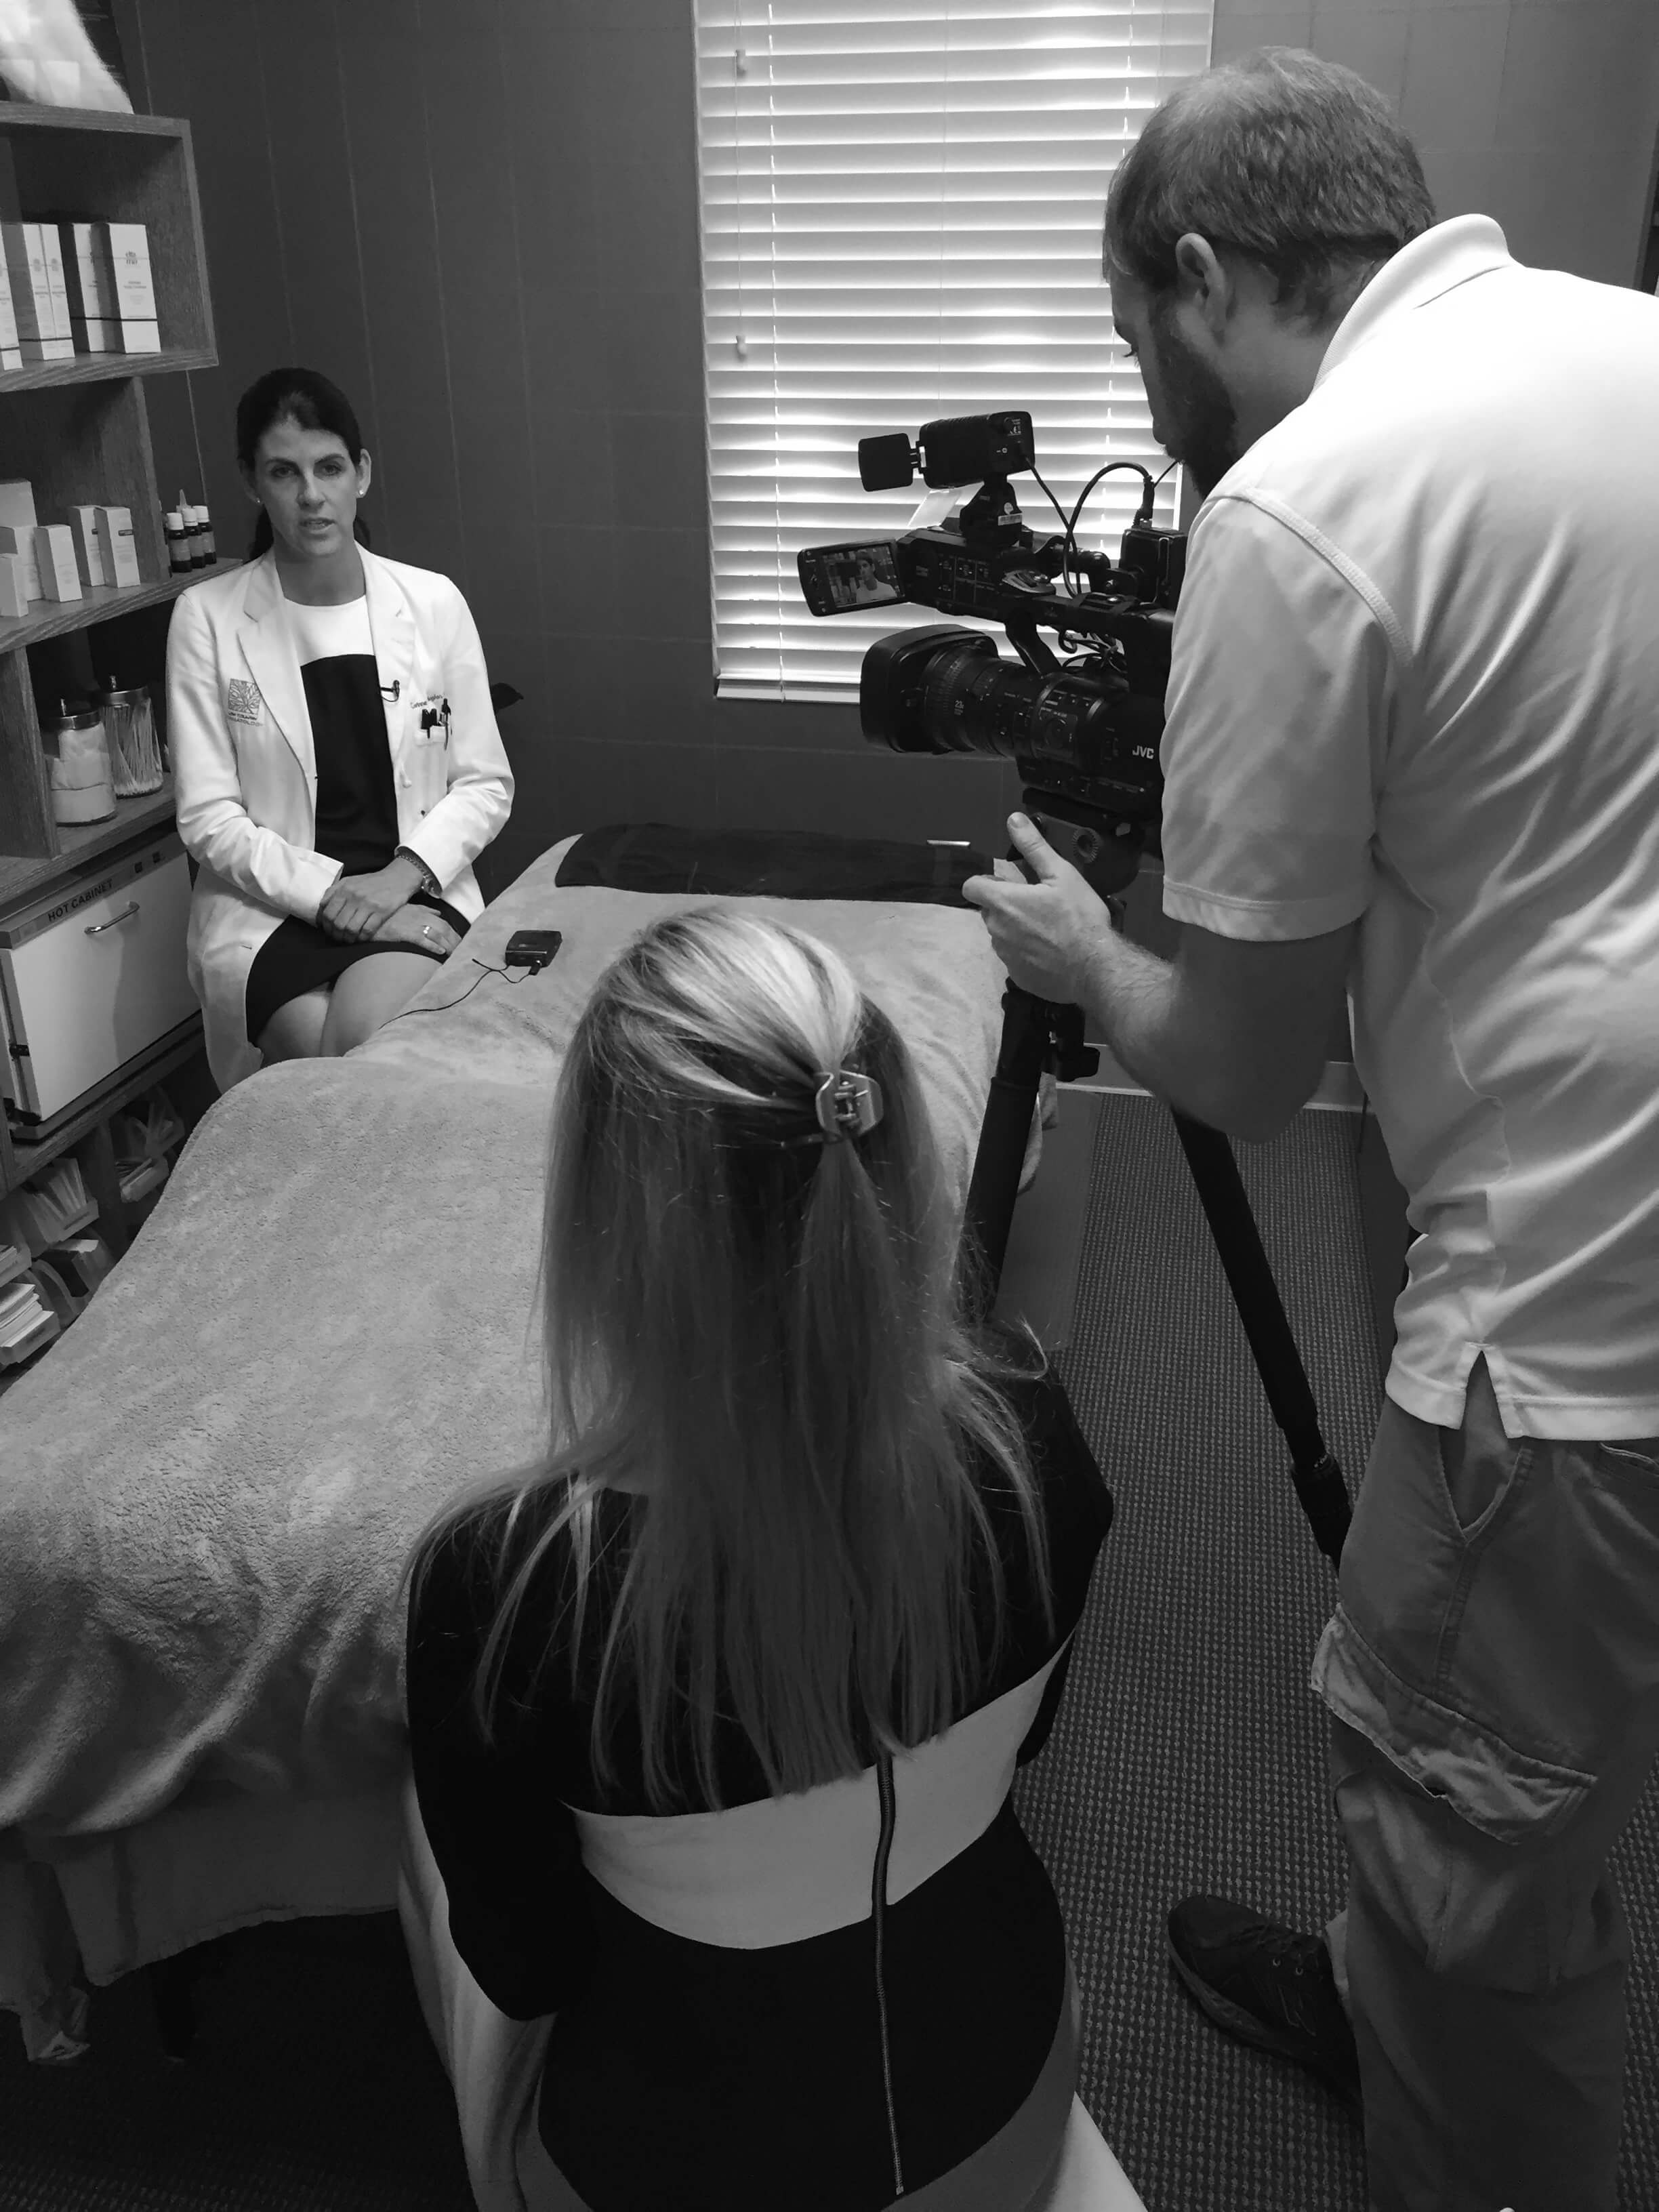 Dr Howington Interview, low country dermatology